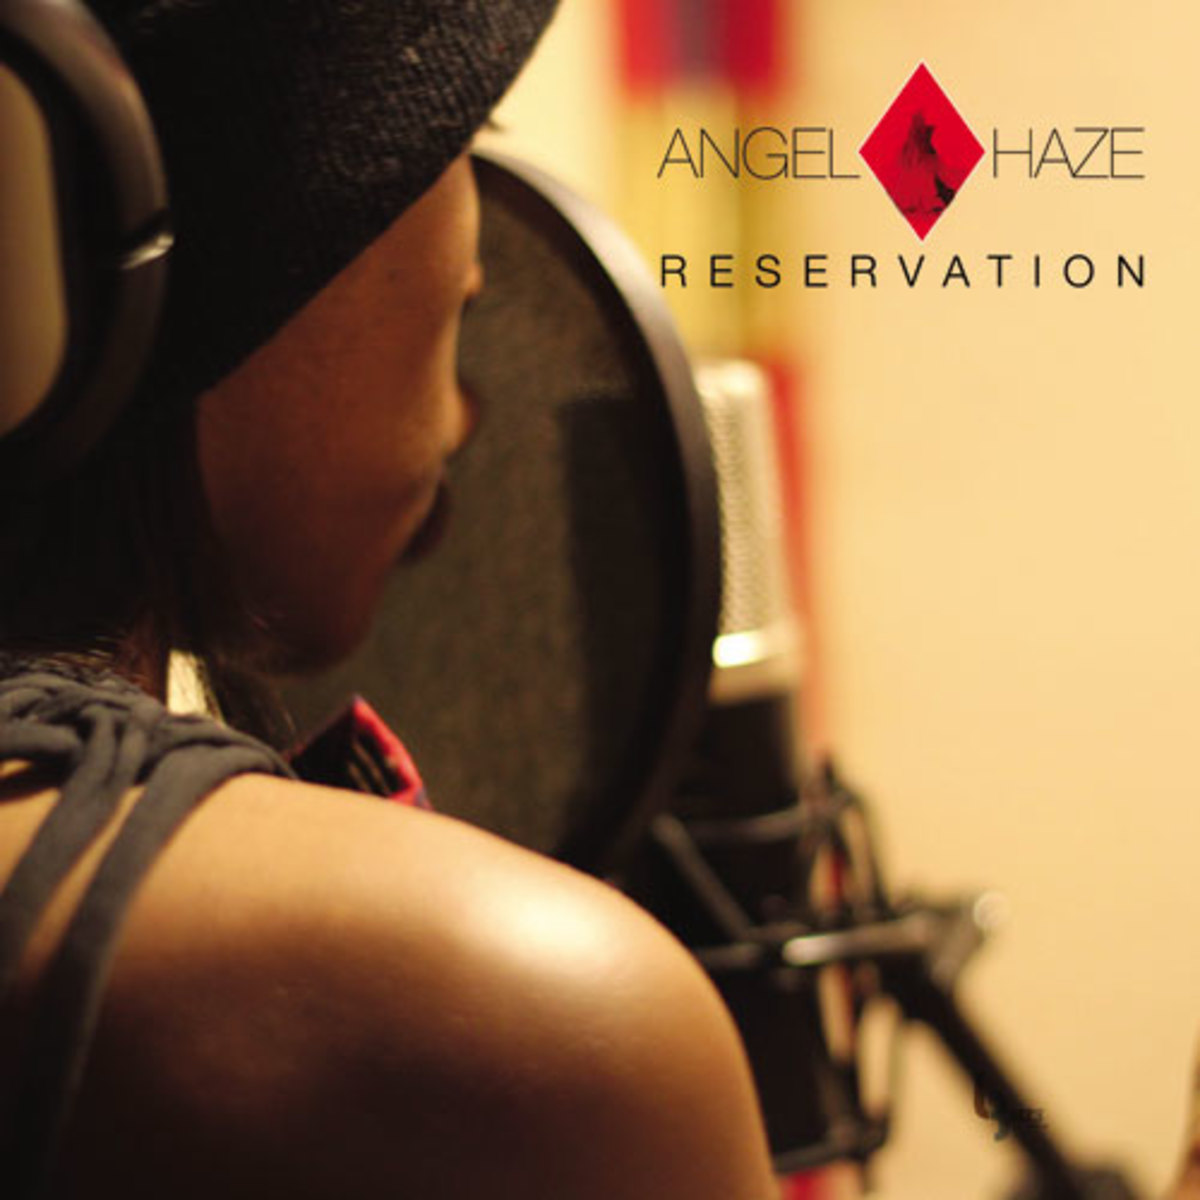 angelhaze-reservation.jpg